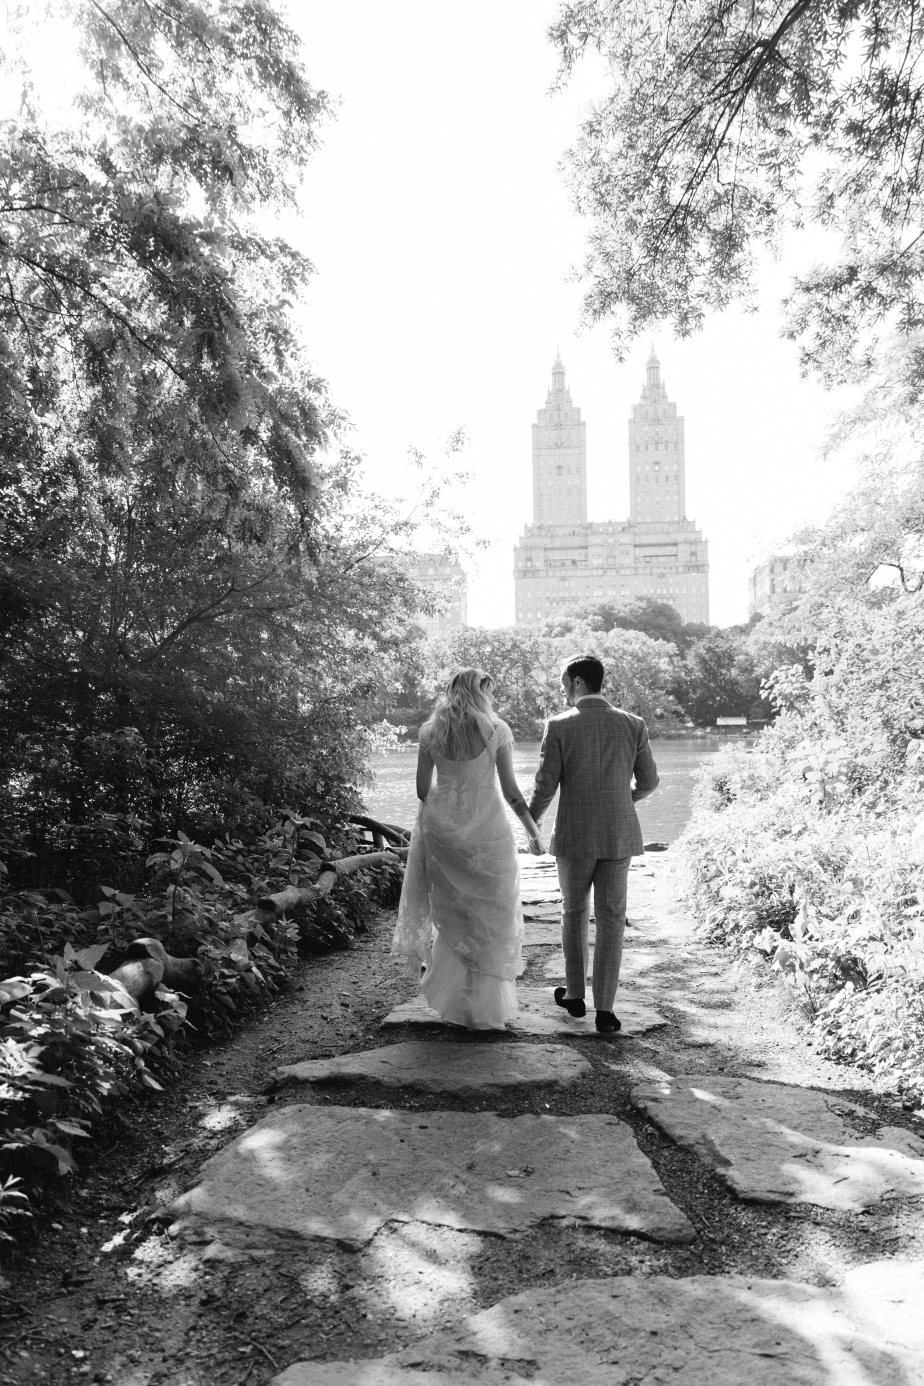 Central-park-wedding_AS-411